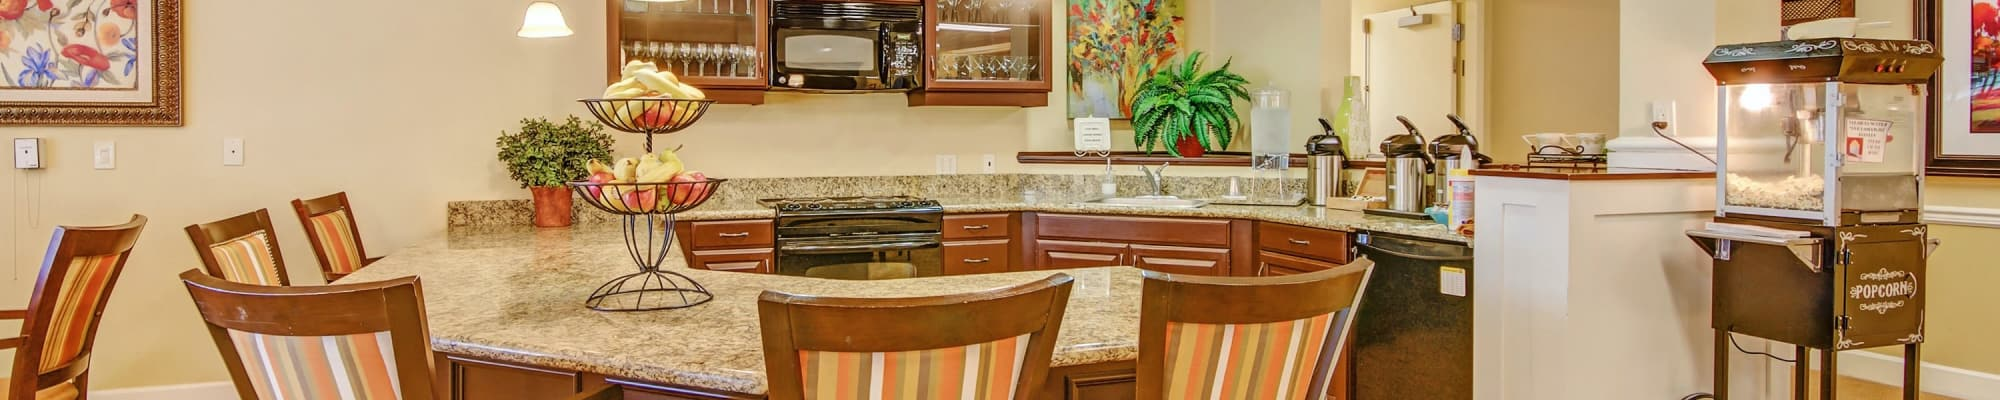 Our community at The Commons at Elk Grove in Elk Grove, California